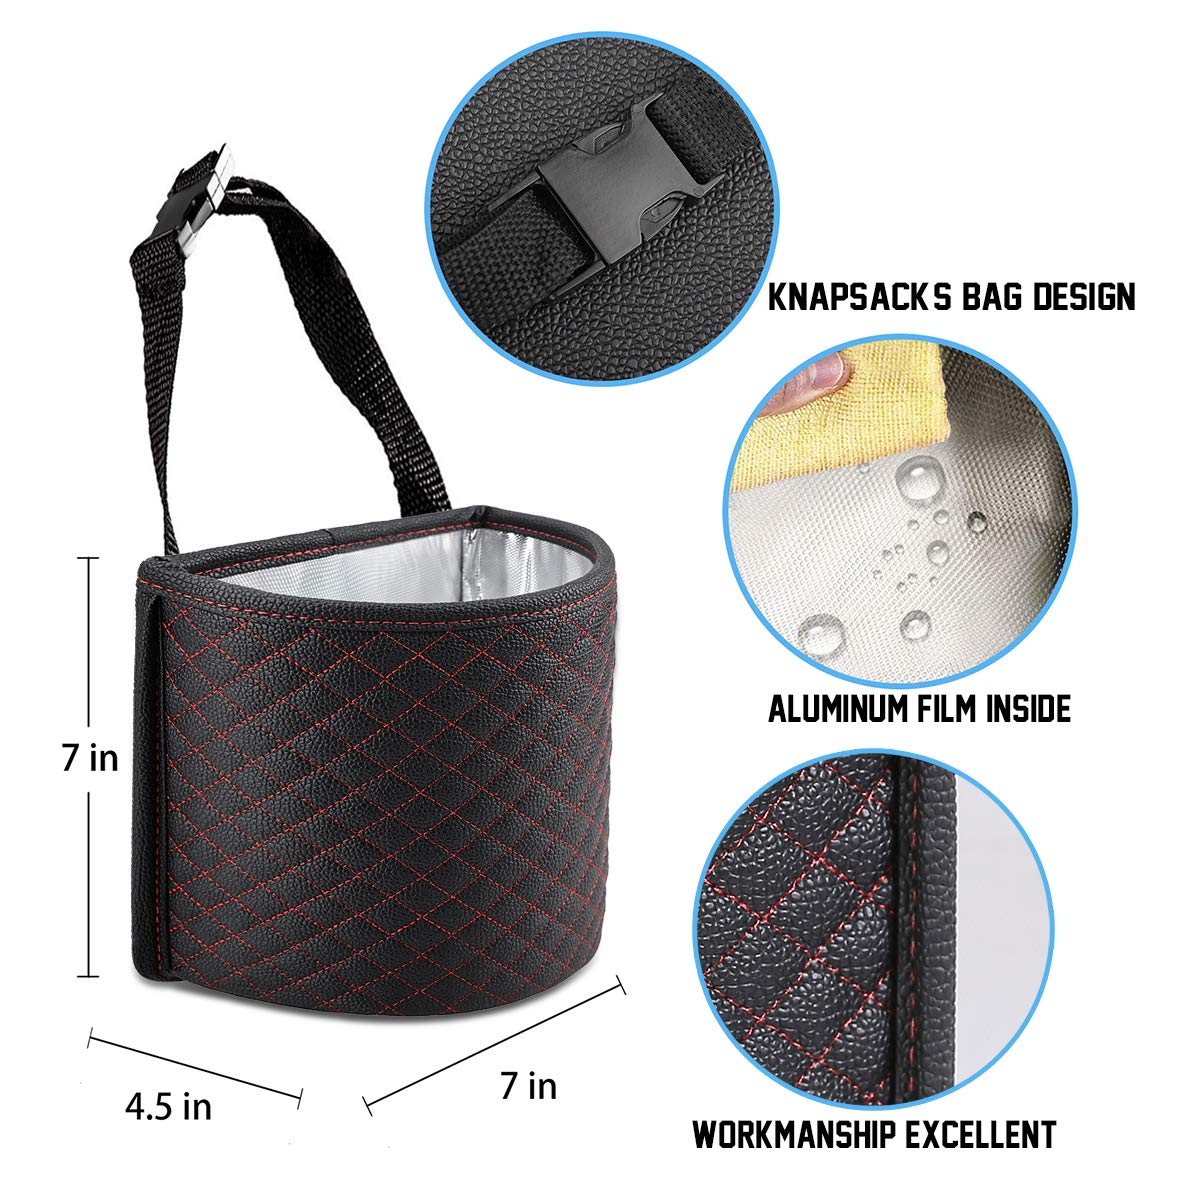 KNGUVTH Car Garbage Cans Hanging Vehicle Trash Bags Bins Drive Portable Auto Garbage Bags Litter Organizers Trash Pail with Adjust Headrest Holder Waterproof Mini Container Car Accessories 2 Pack